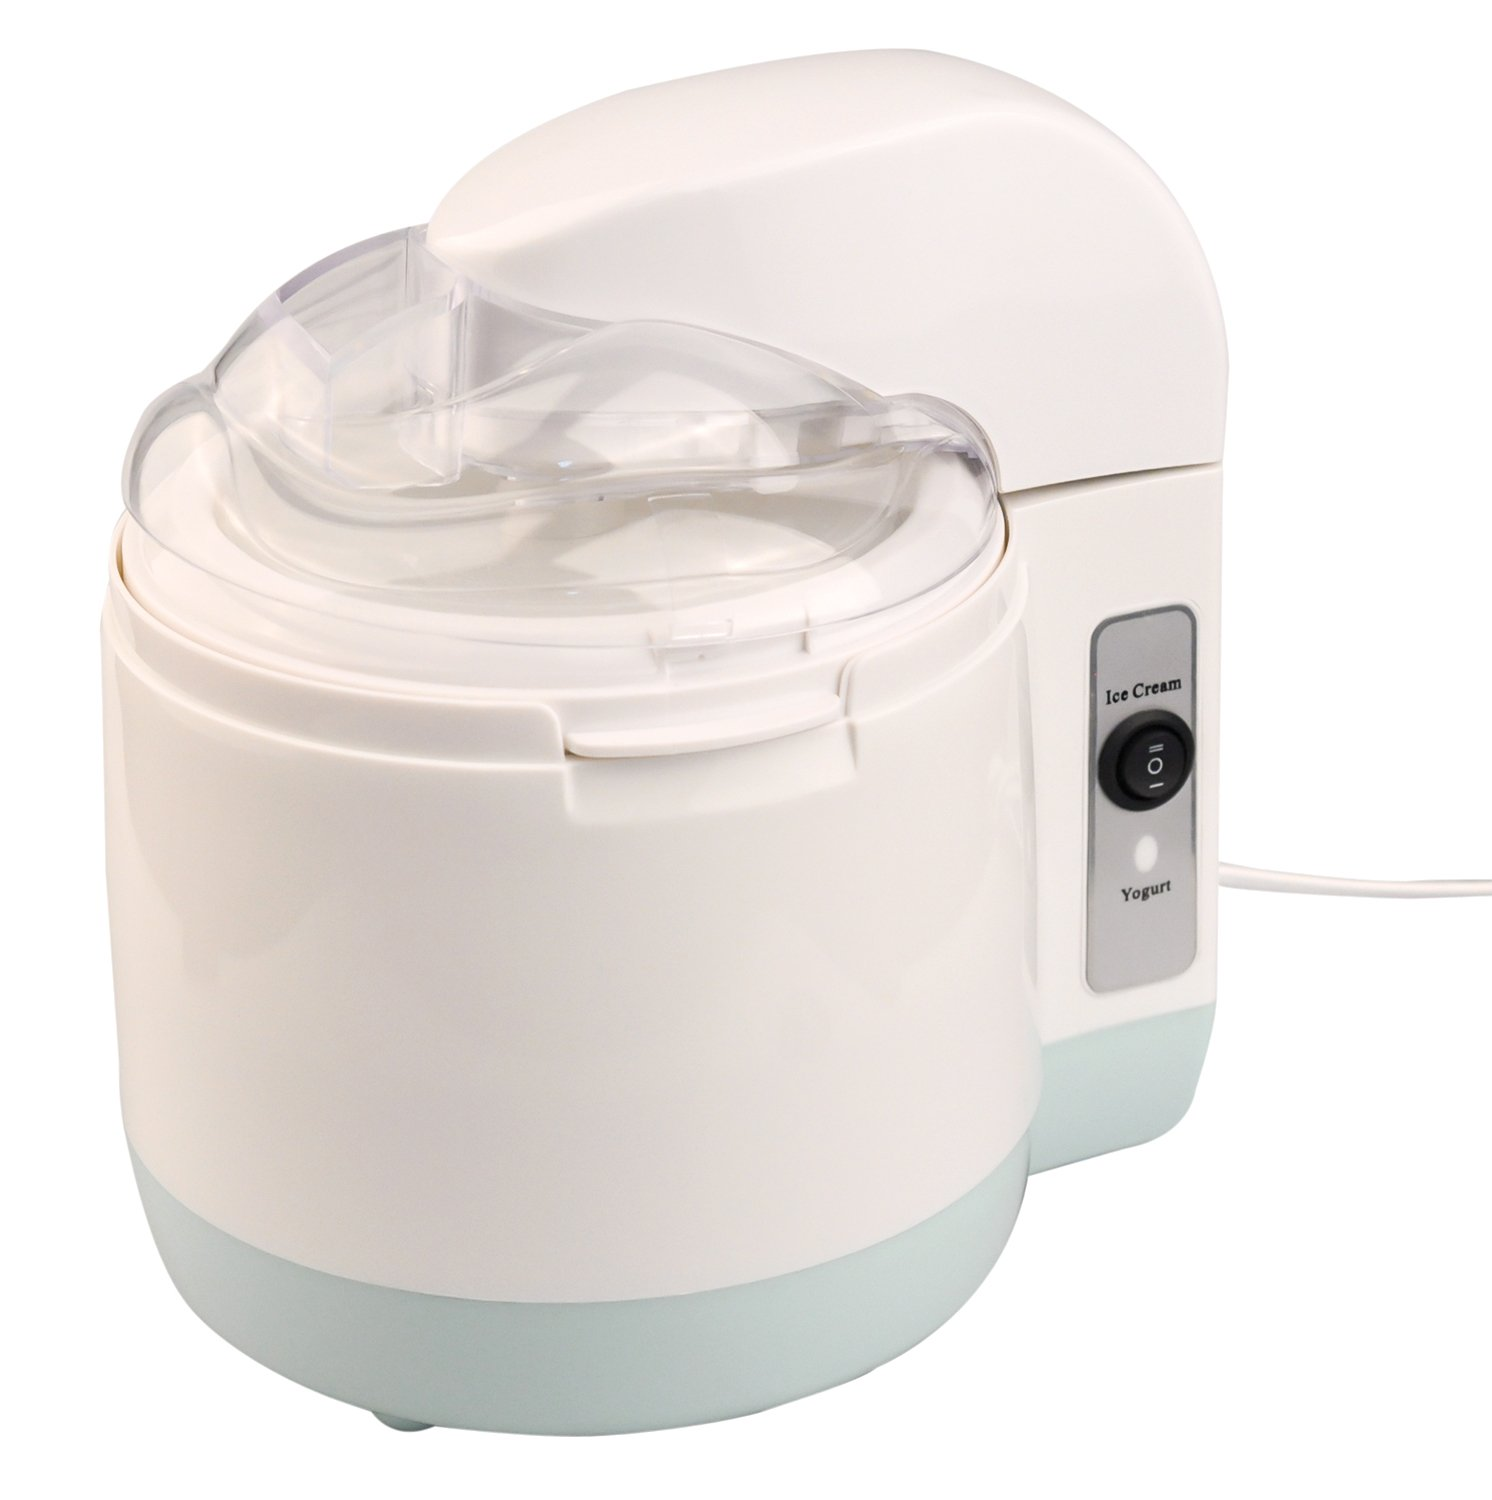 PowerDoF Ice Cream Maker, Automatic Frozen Yogurt Machine for Home, Small, White